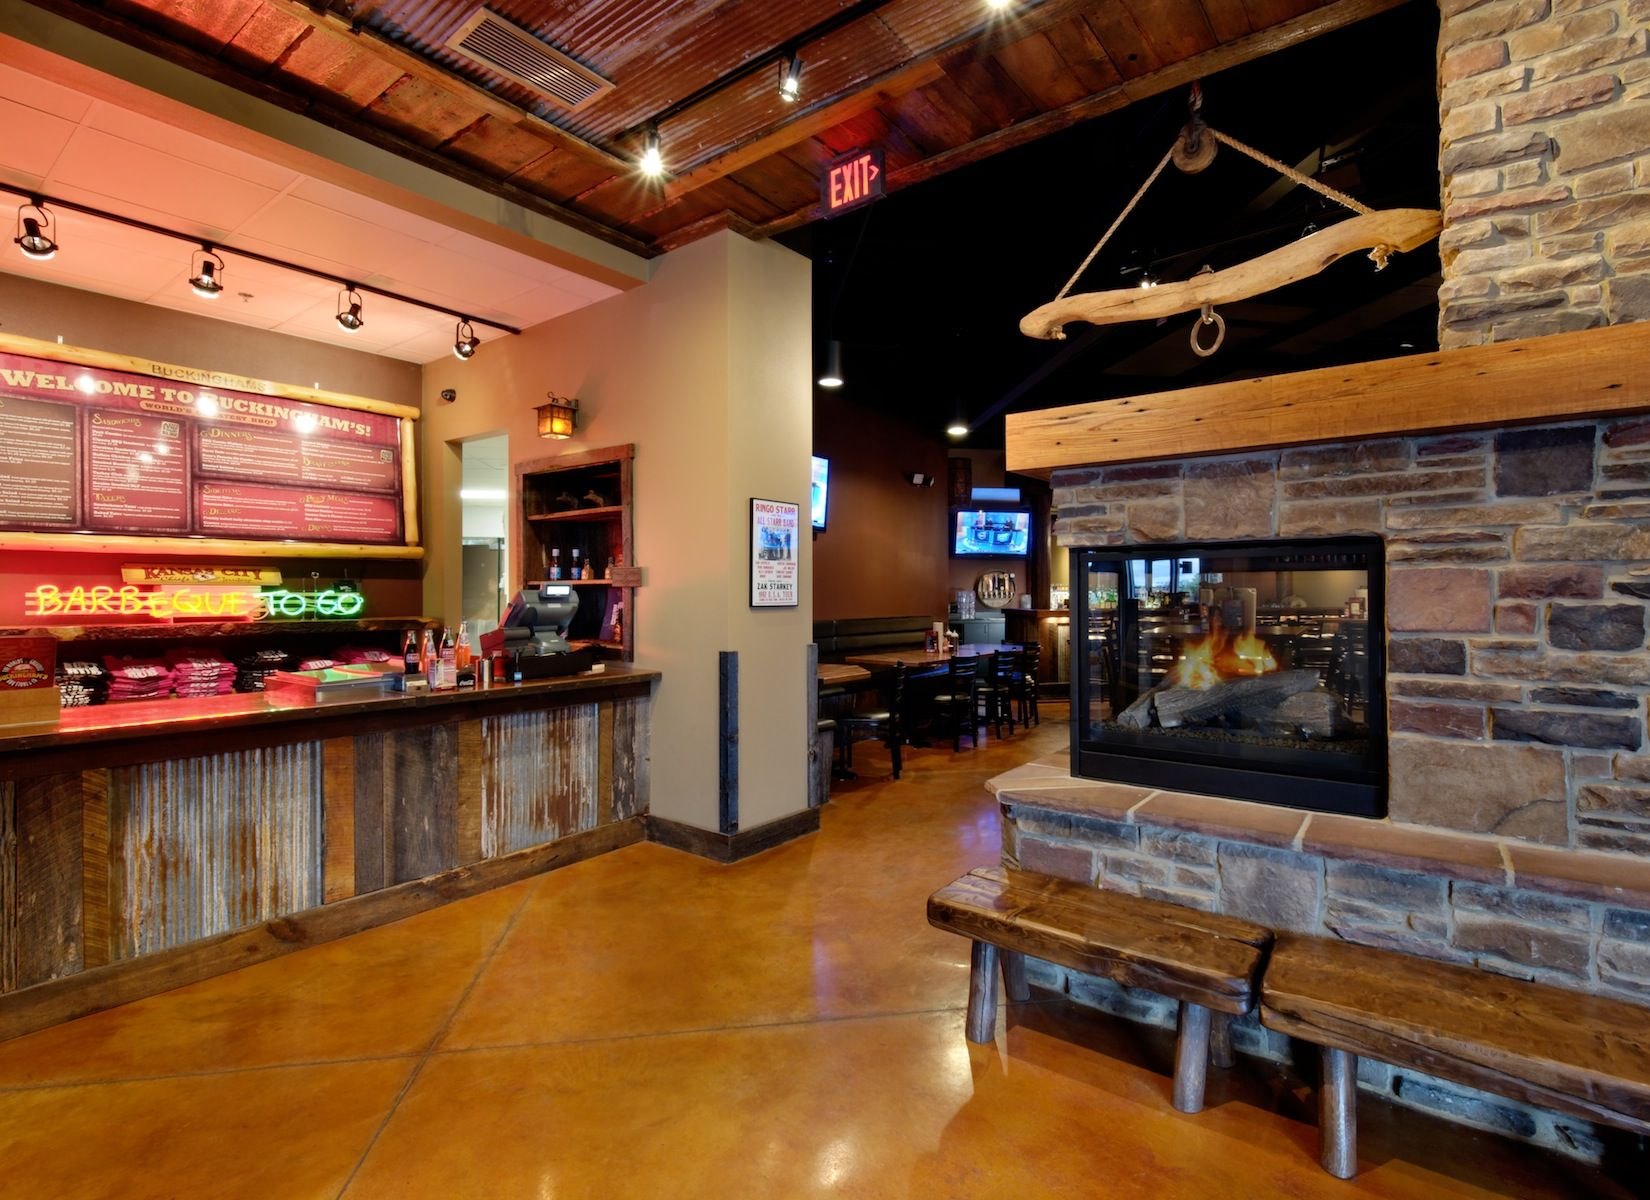 bbq restaurant interior design - Google Search | restaurant ideas ...